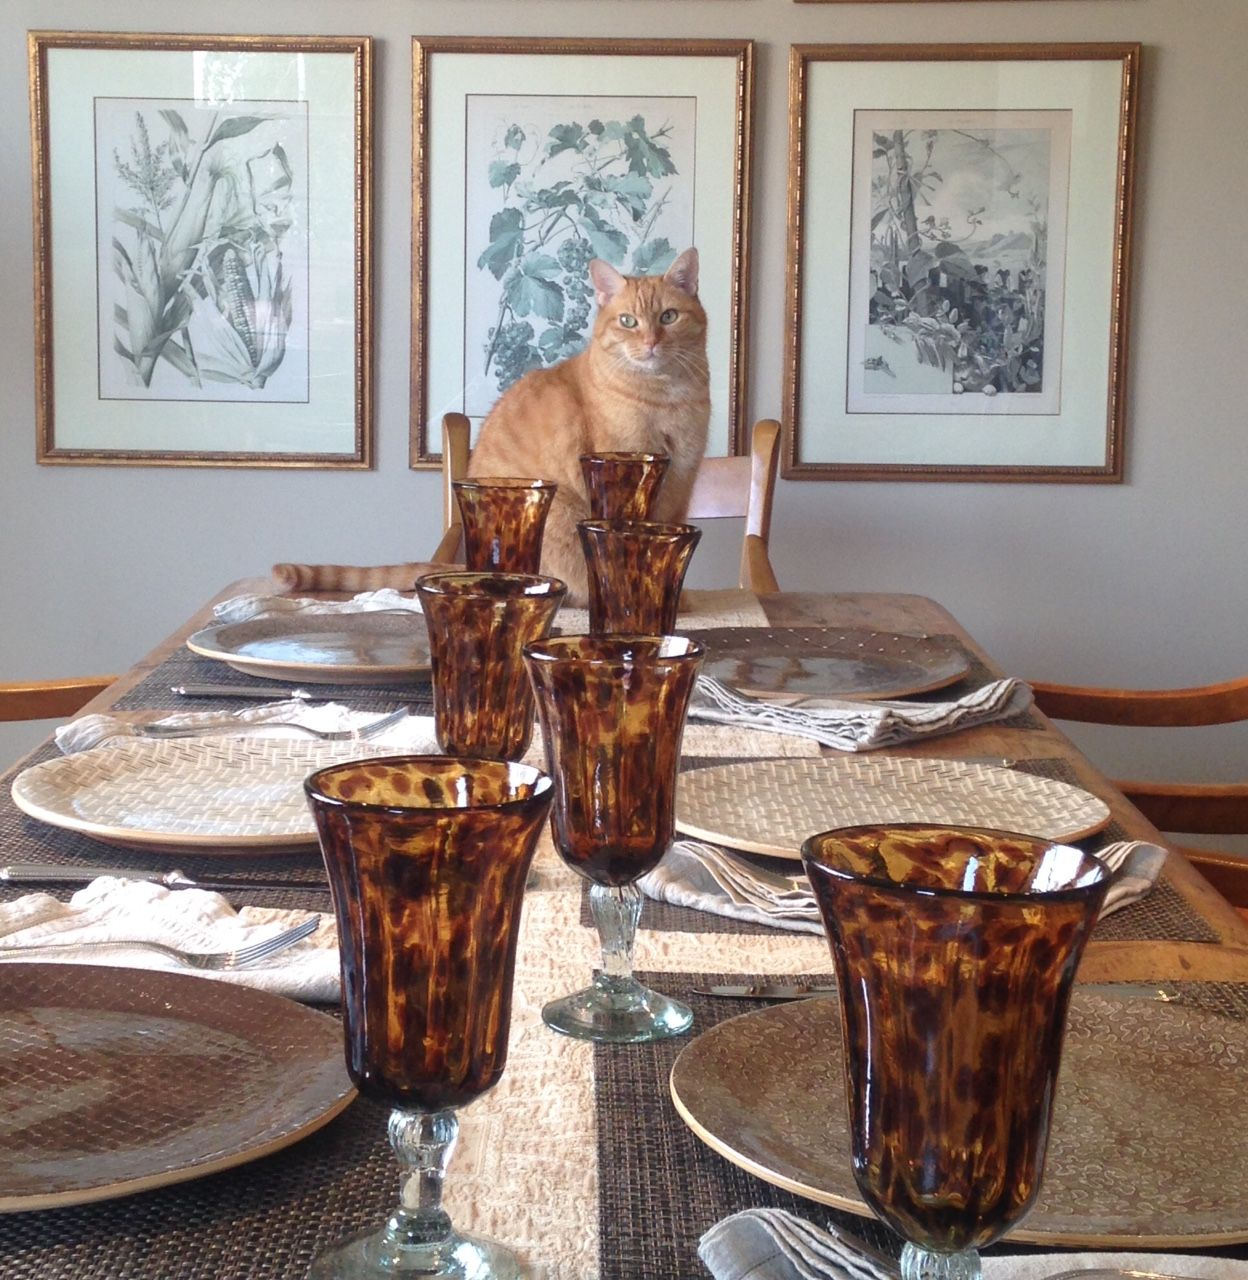 Otis overseeing Ellen's table setting game...